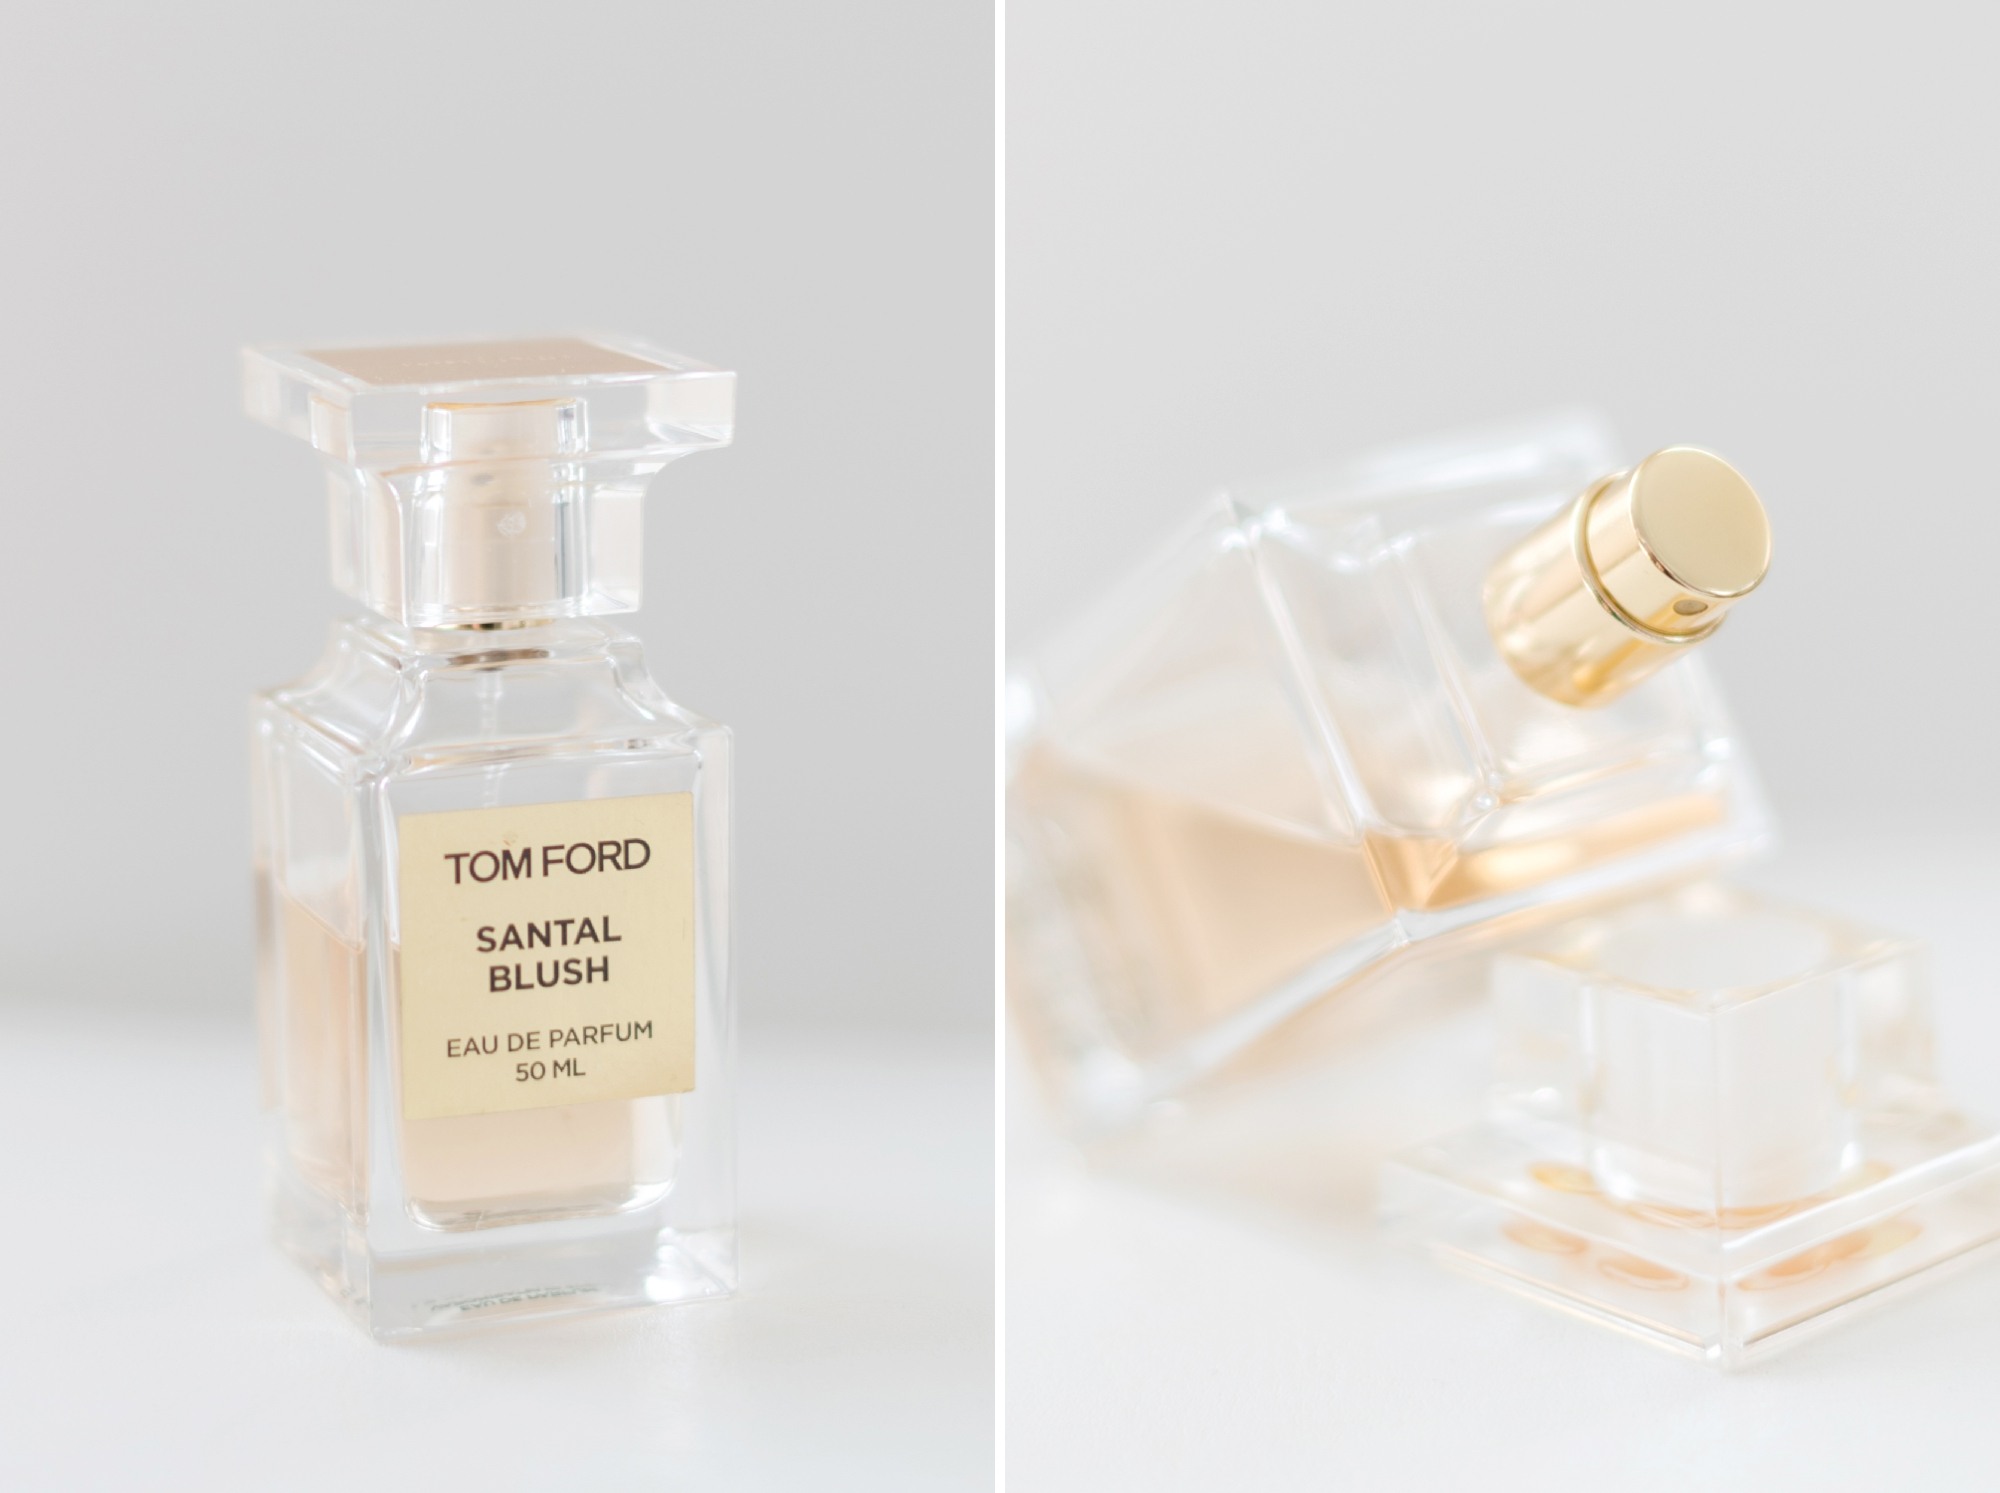 tom ford santal blush perfume